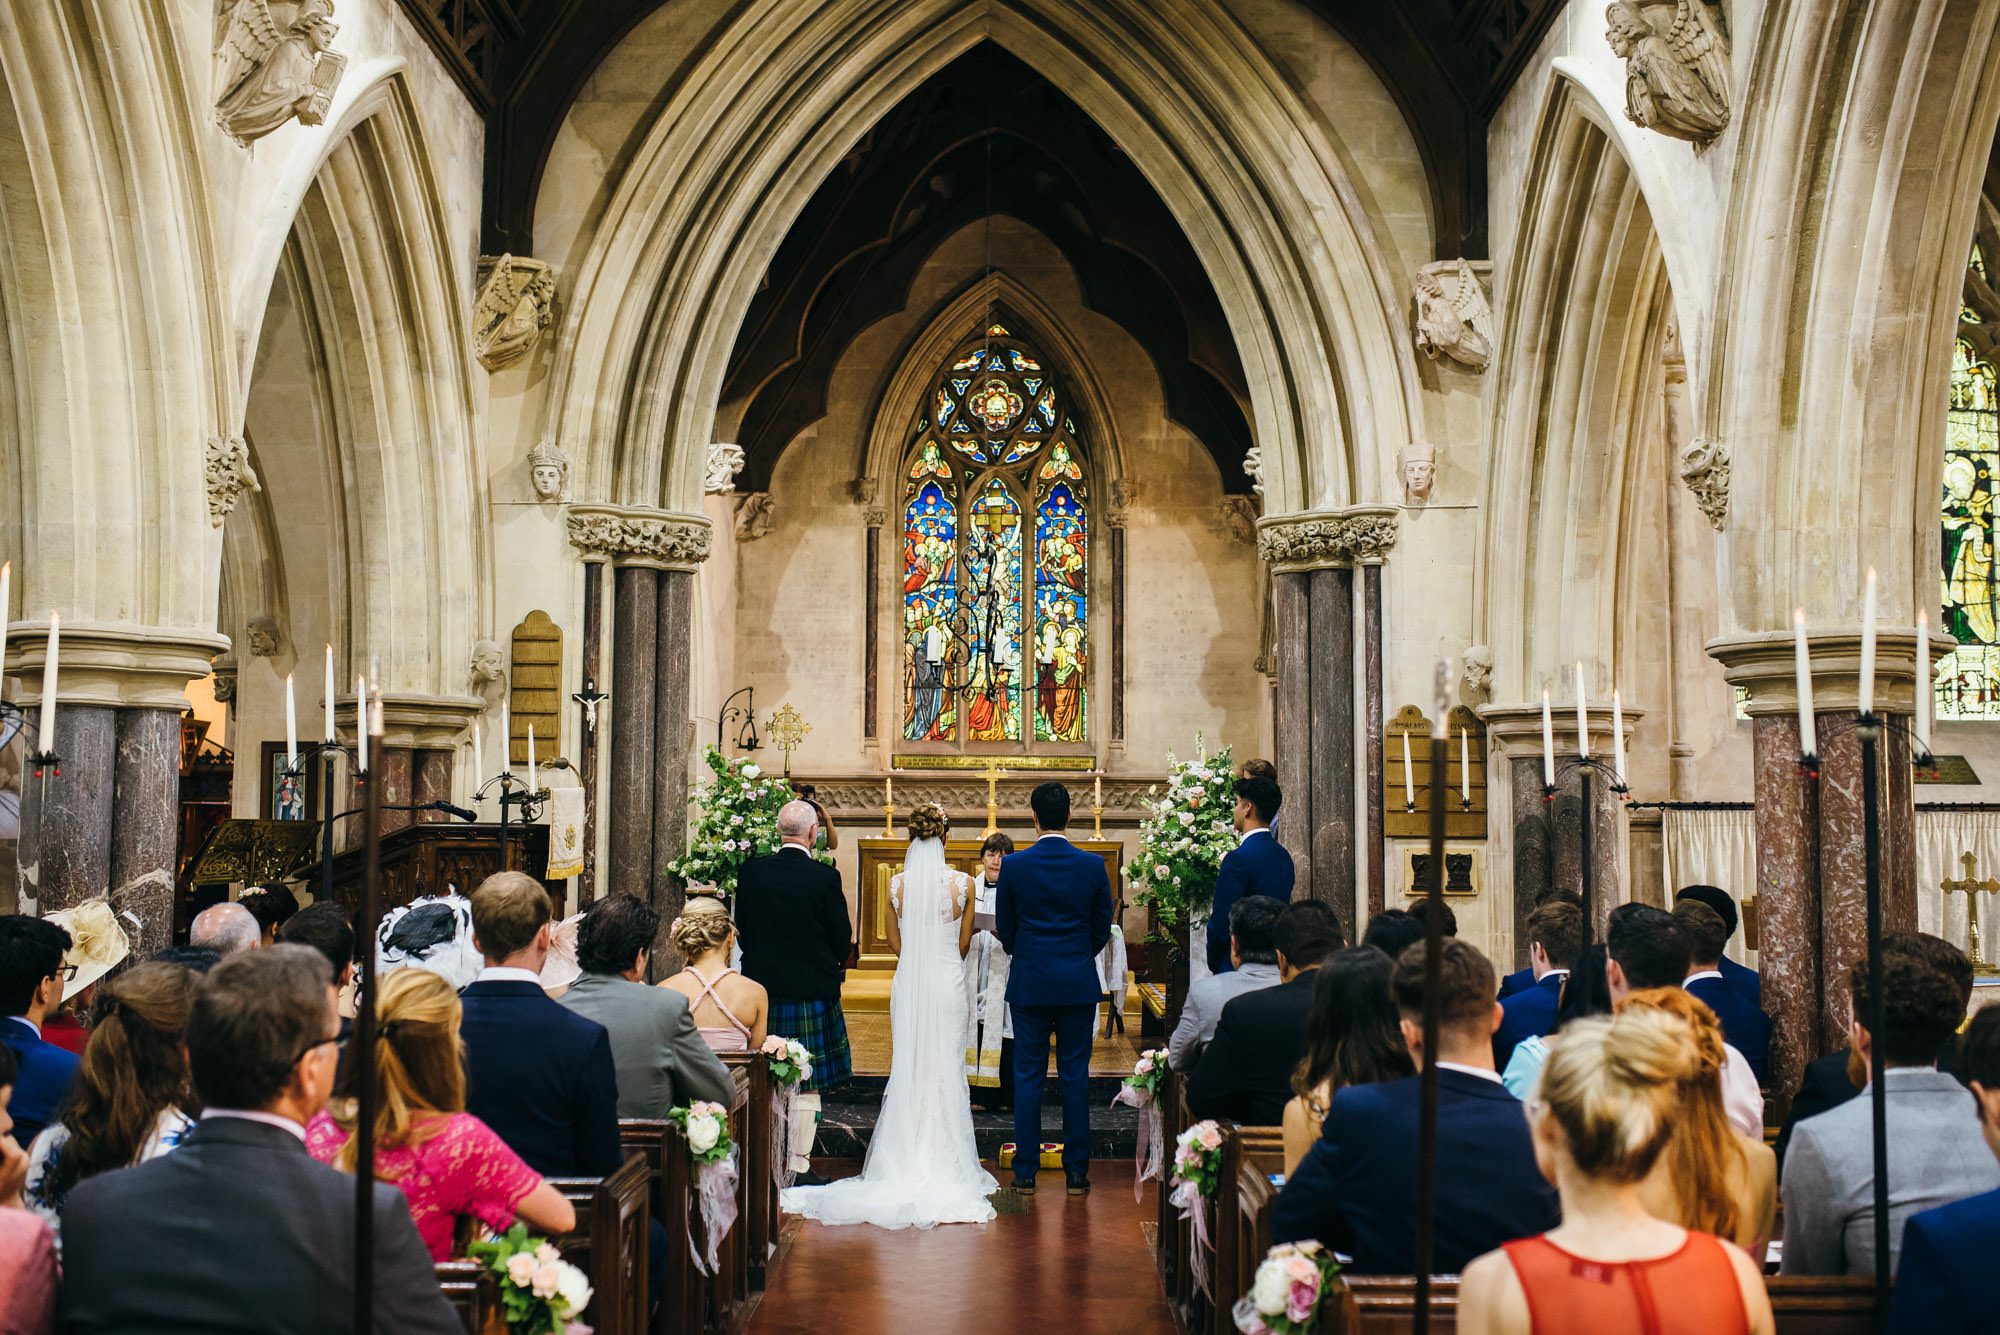 St Audries Park church wedding